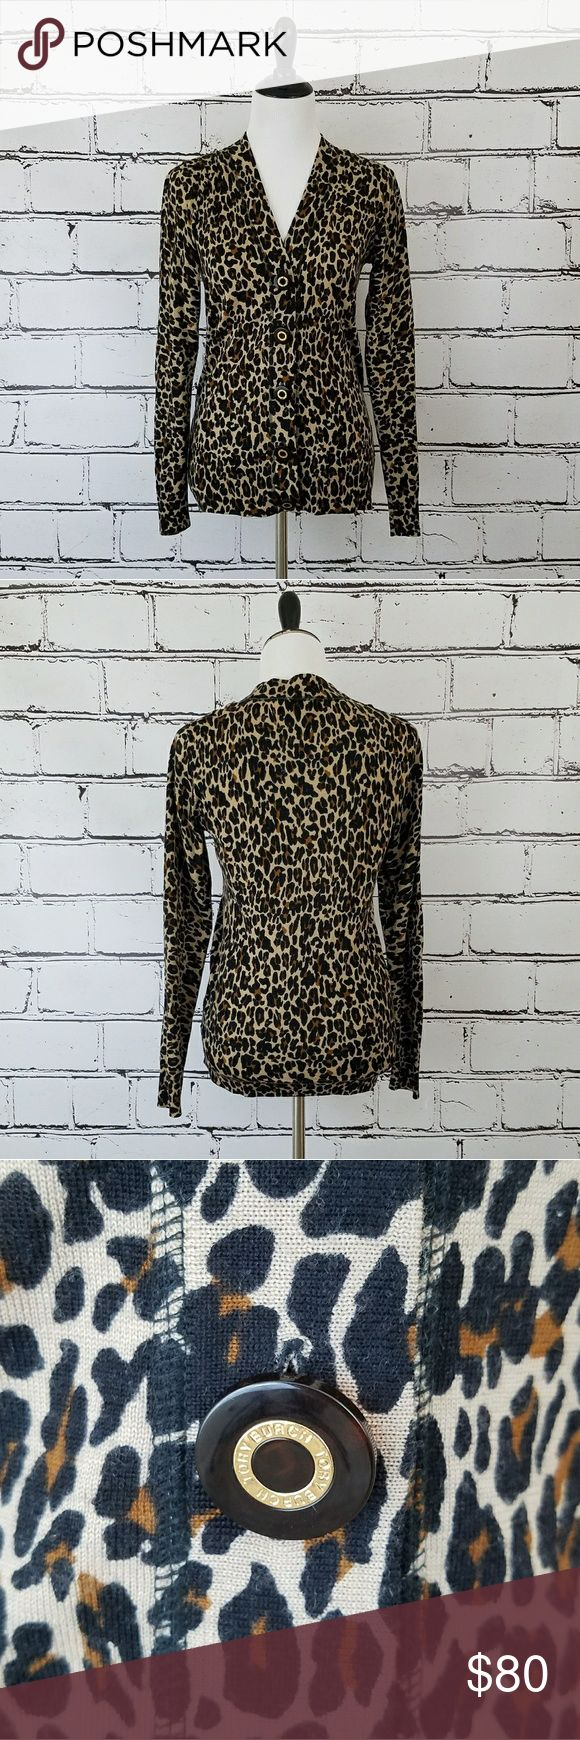 Tory Burch Cheetah Cardigan! Cream colored cardigan sweater with tan and brown cheetah/leopard print. Large logo buttons down the front. 100% wool. Length is about 25 inches and armpit to armpit is about 18 inches. Great condition! Tory Burch Sweaters Cardigans